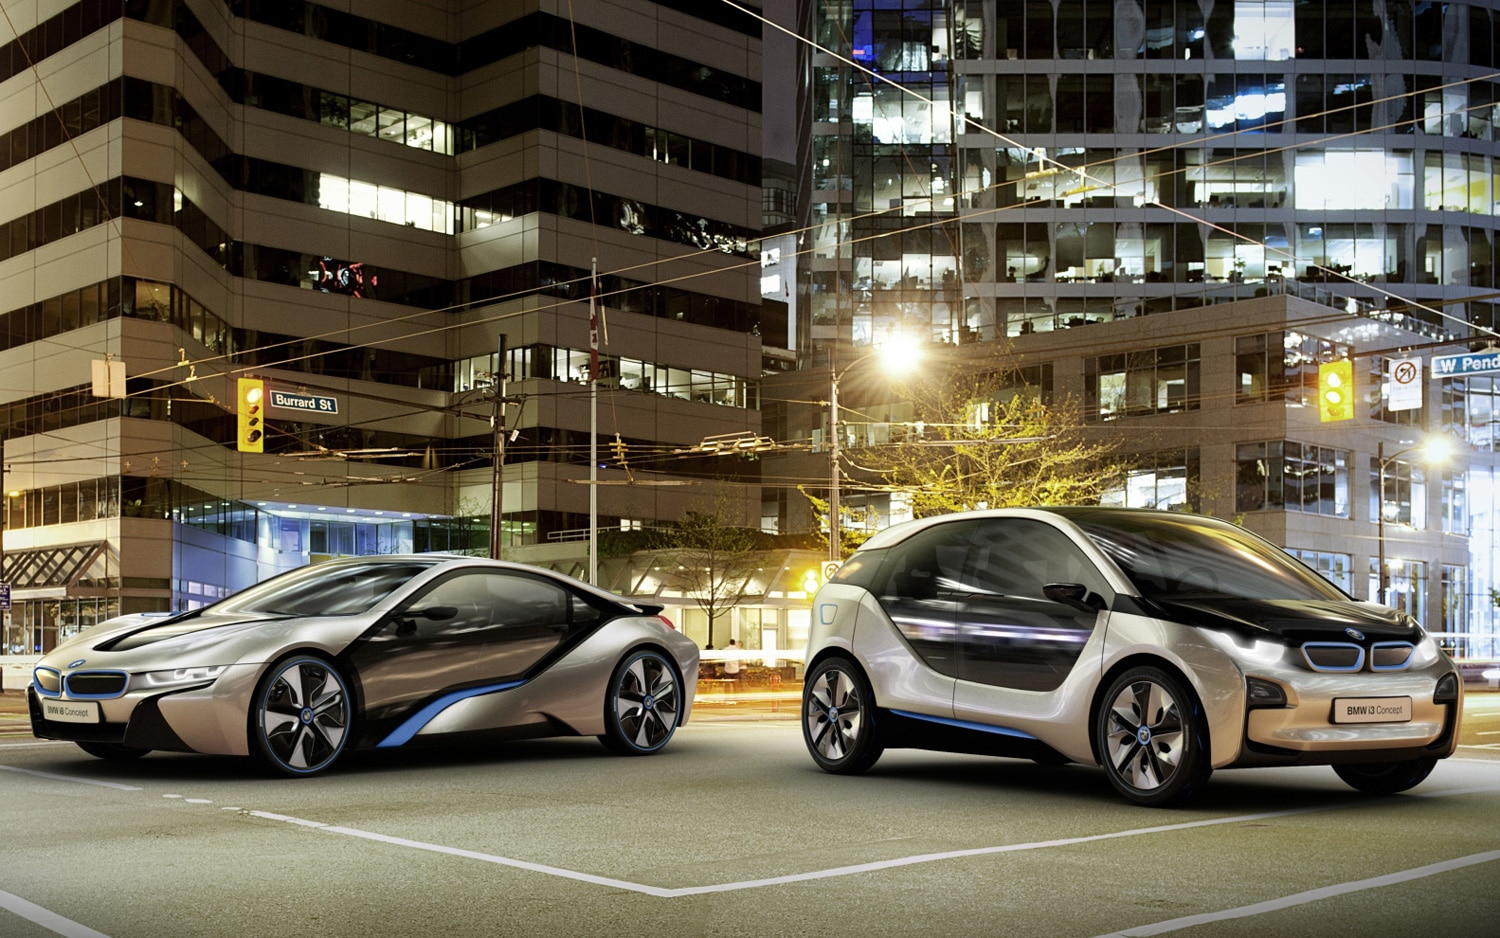 2011 BMW I3 And I8 Concepts In Street1